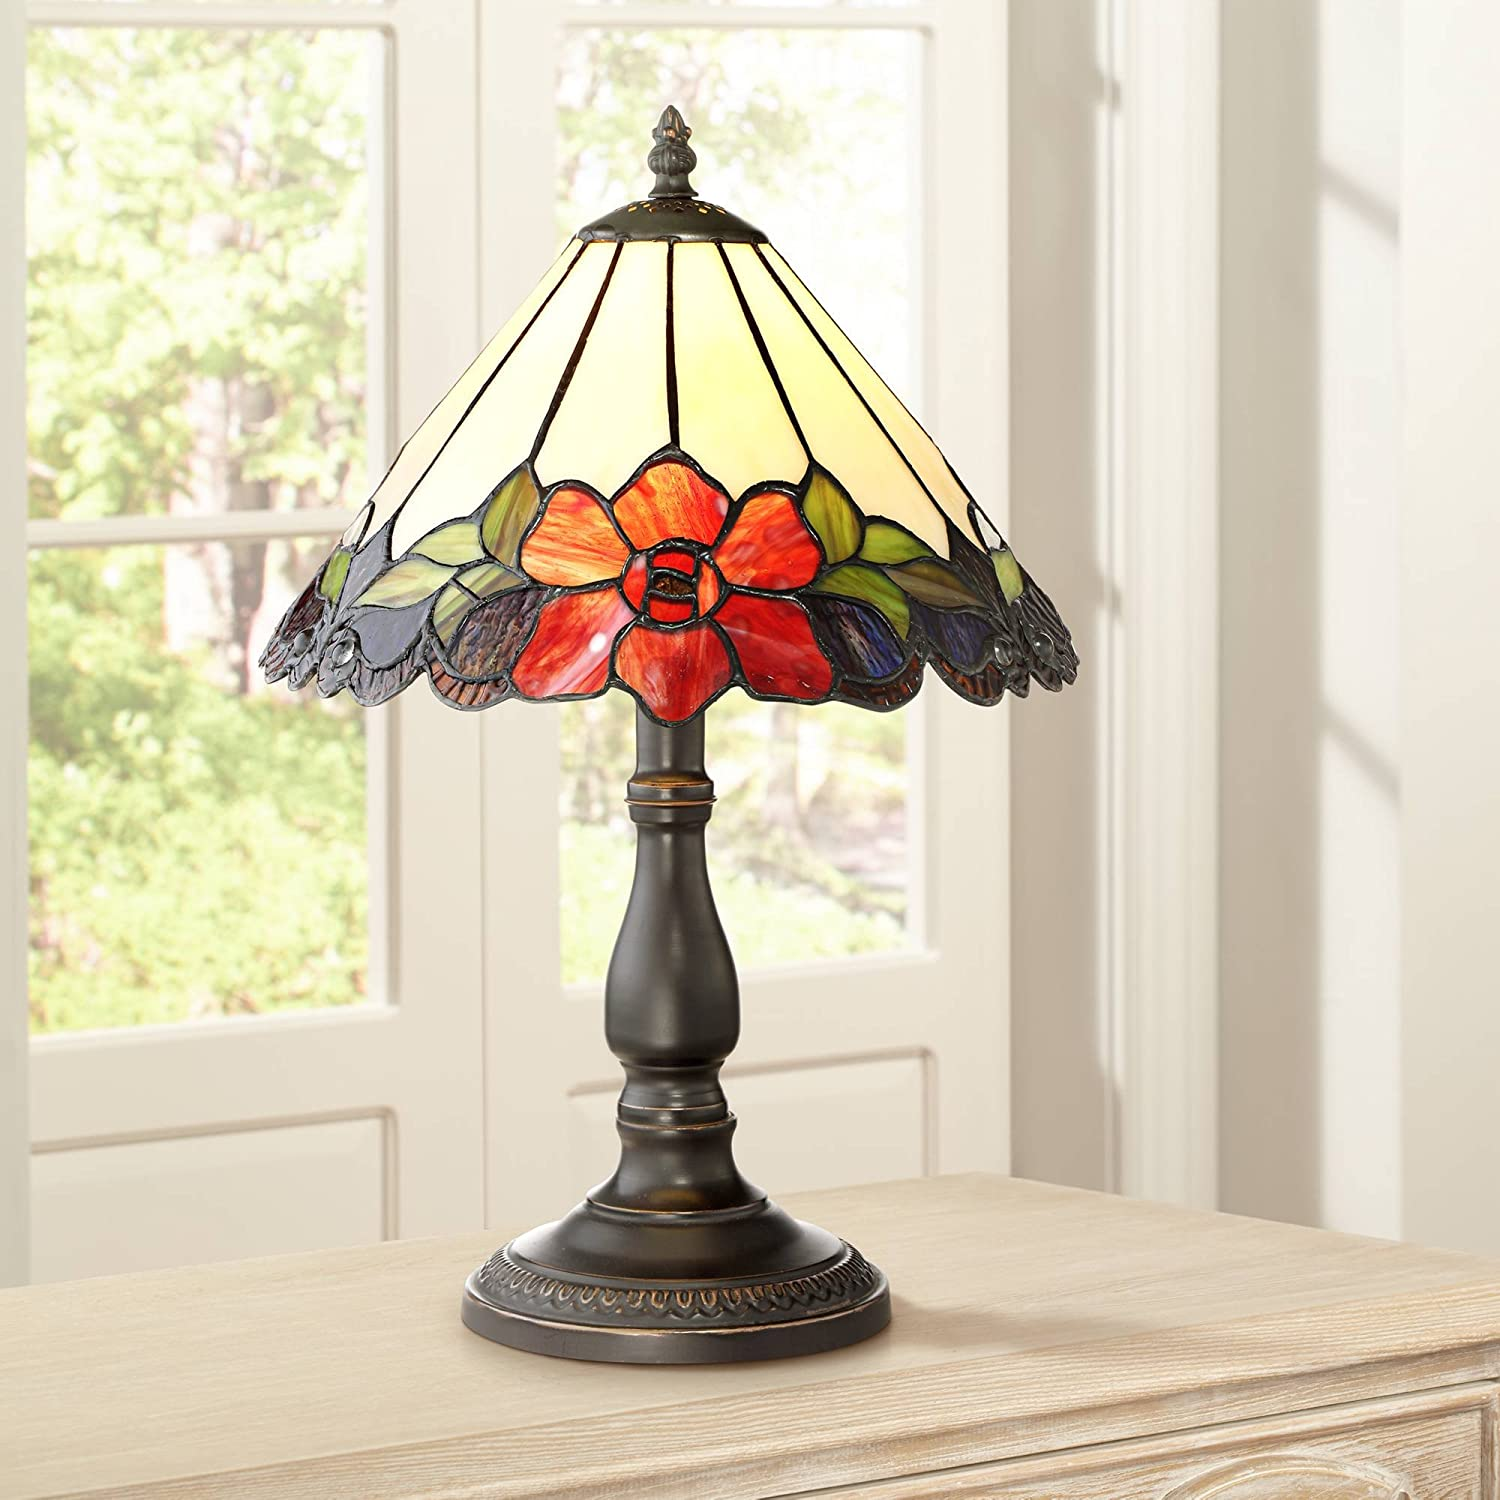 """Dyann Flower Traditional Accent Table Lamp 17 1/2"""" High Bronze Floral Glass Art Shade for Bedroom Nightstand Office - Robert Louis Tiffany"""